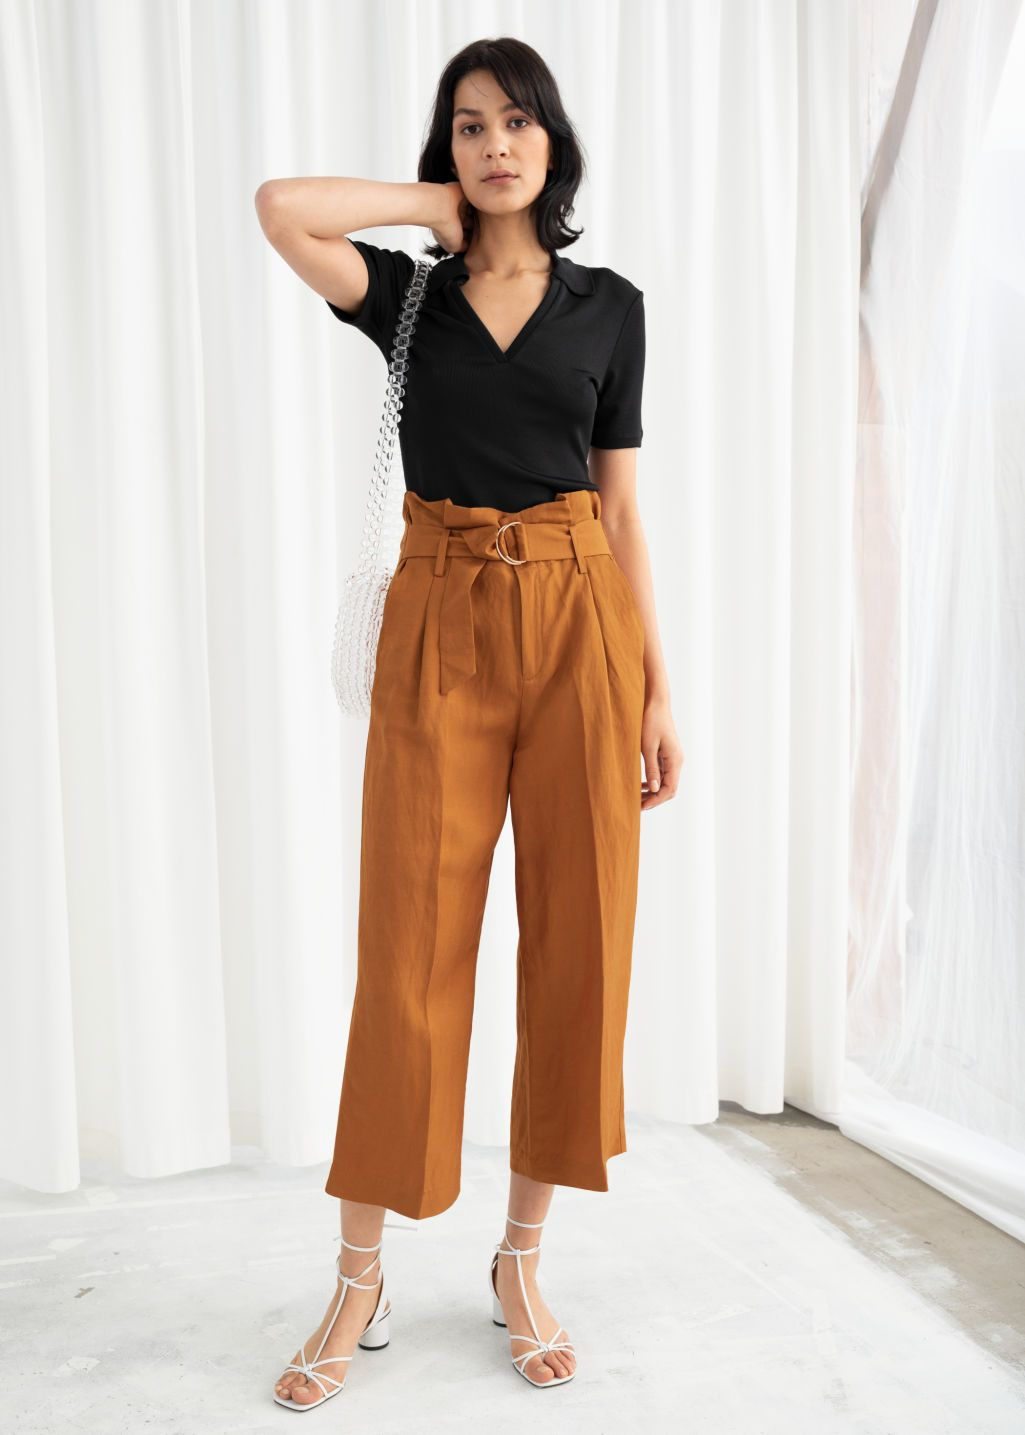 GREEN LINEN TROUSERS High Waisted Stretch Elastic Waist Pants Tie Up Casual Boho